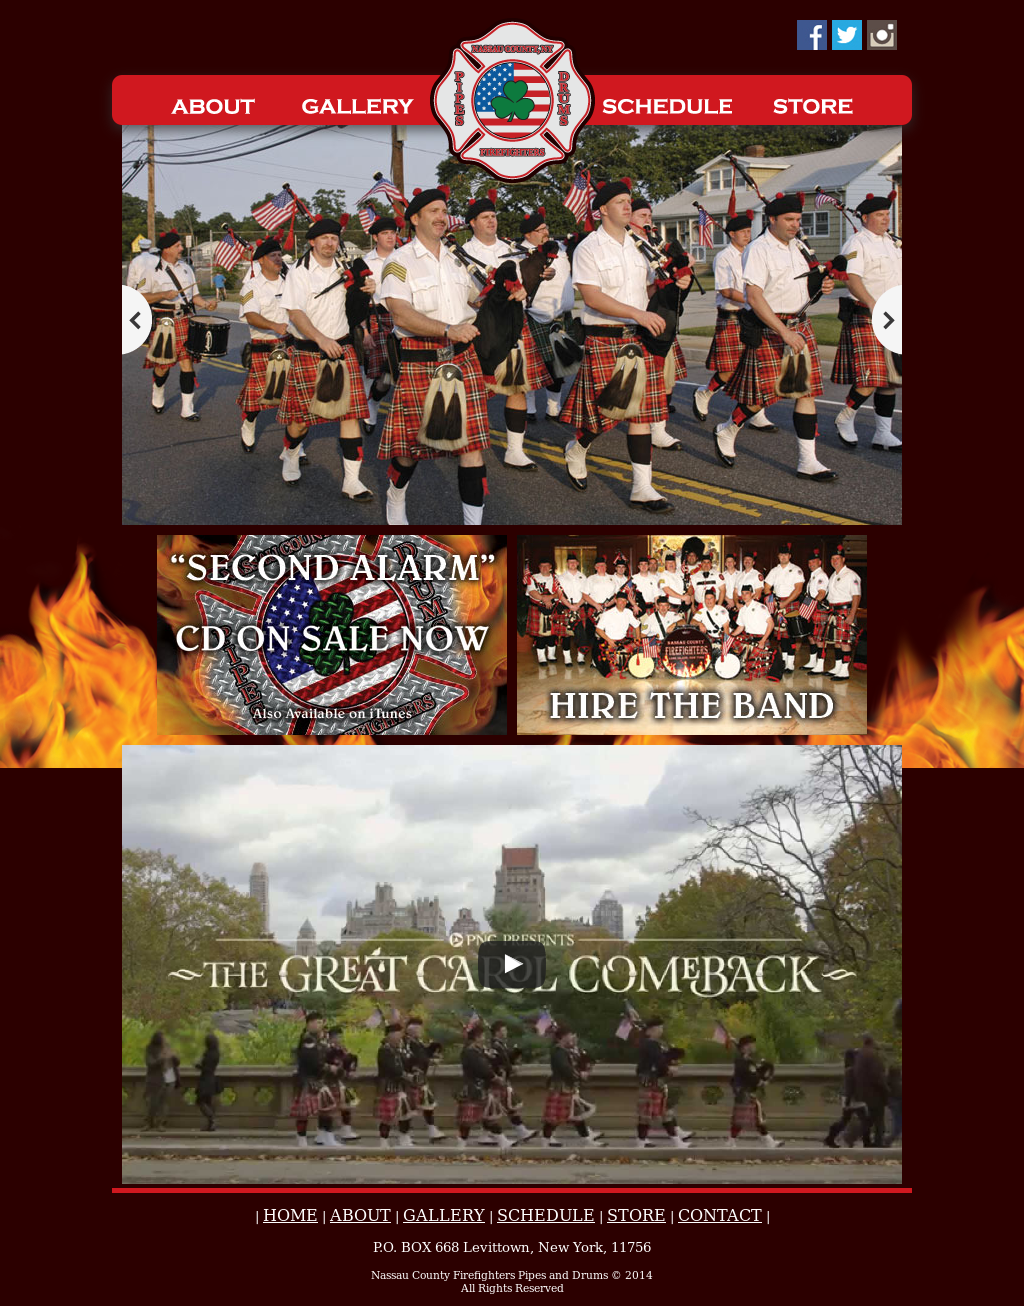 Nassau County Firefighters Pipes & Drums Competitors